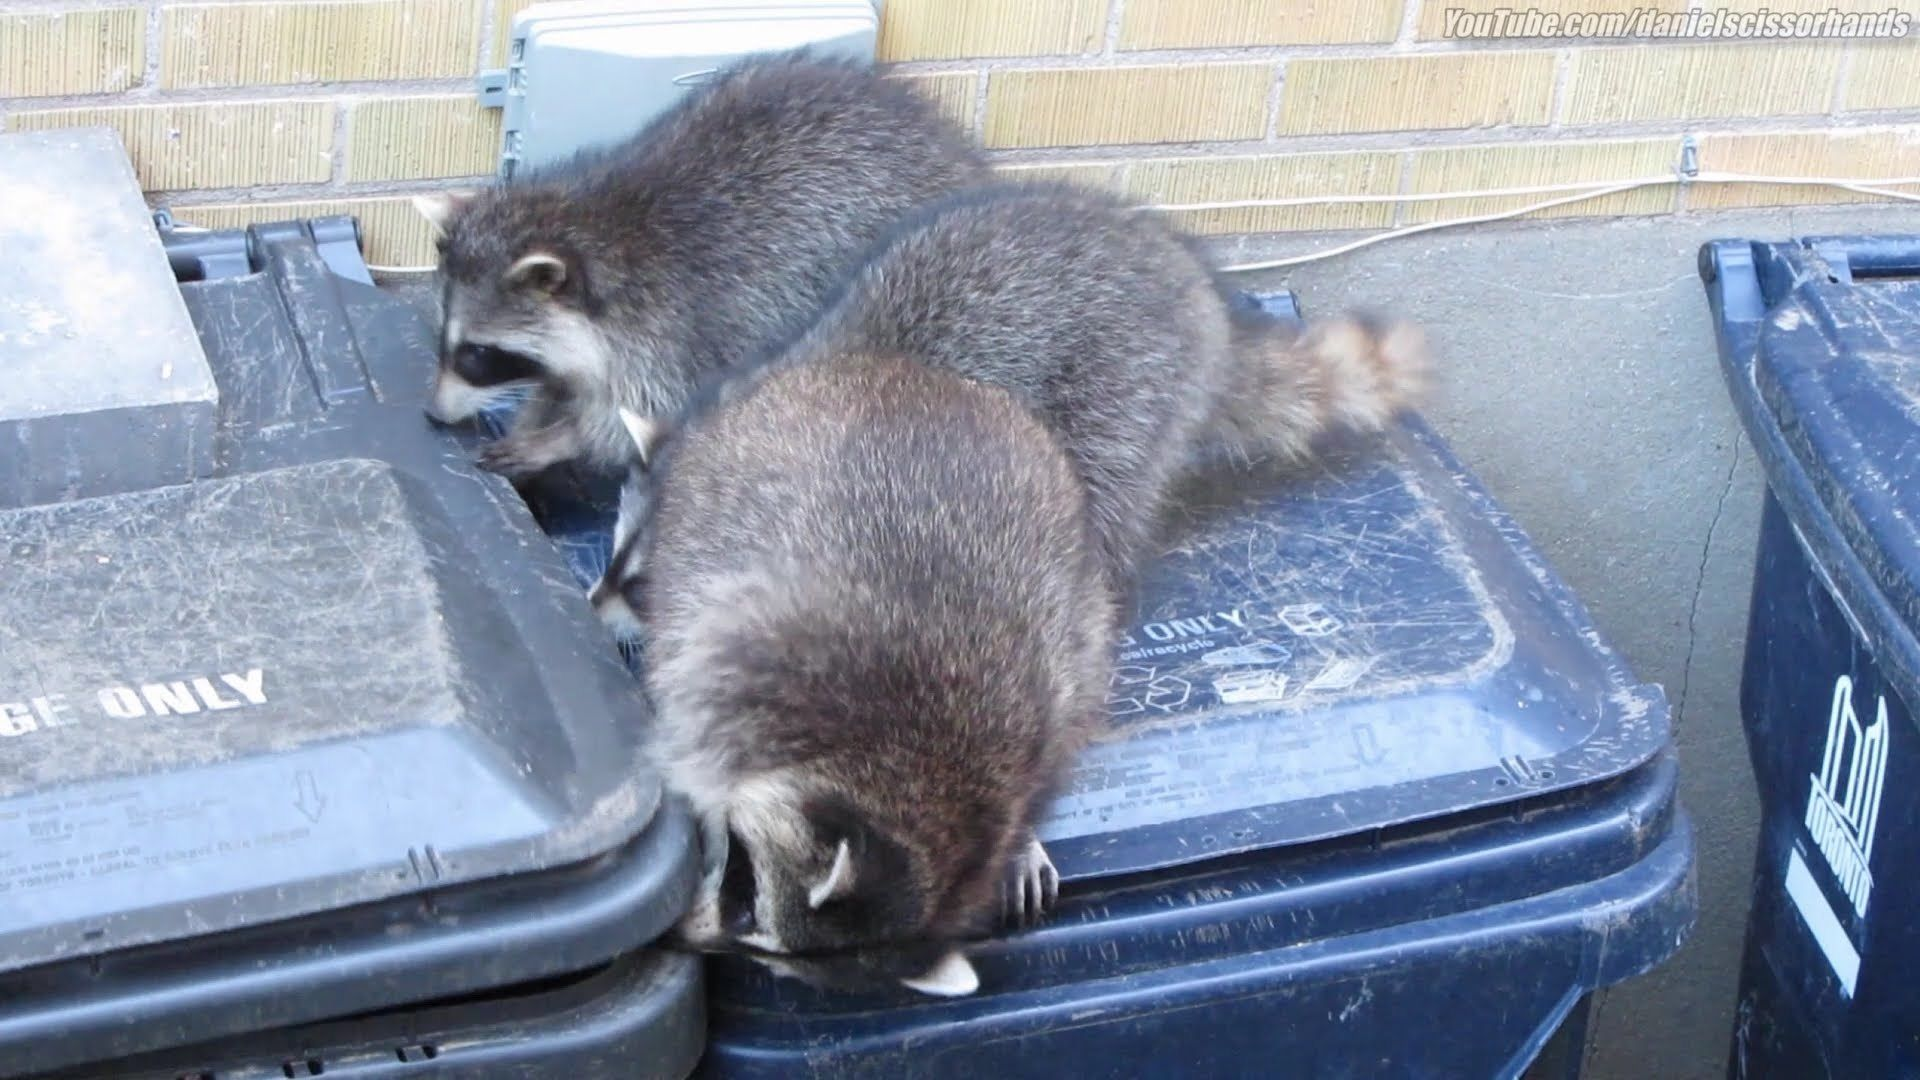 How-To-Get-Rid-of-Raccoons-on-Your-Property-Safely-and-Humanely-Raccoons-In-Trash